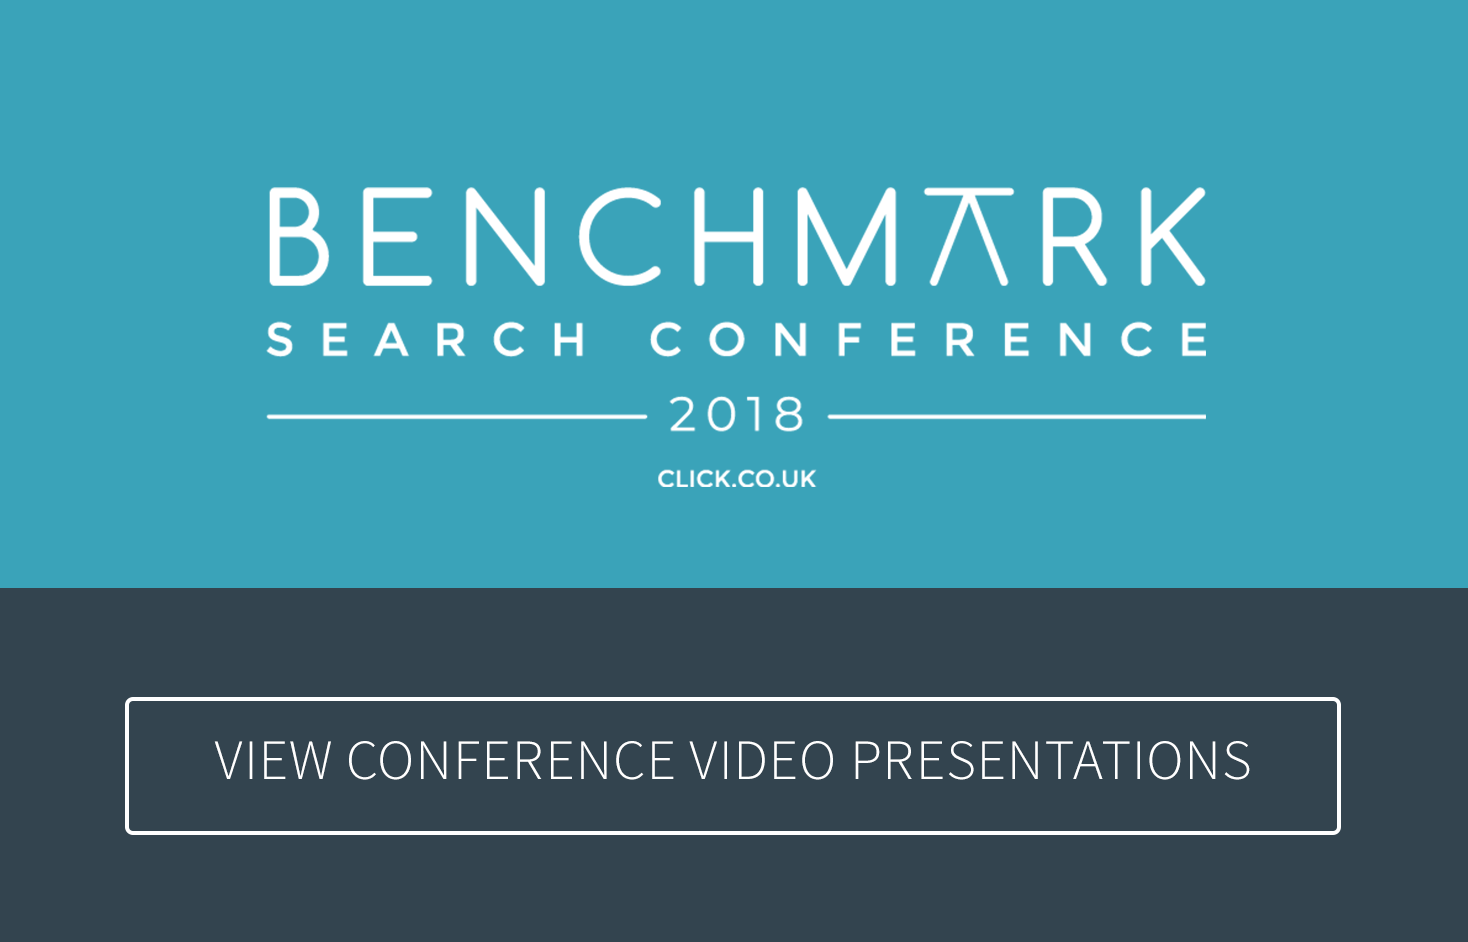 benchmark-view-video-presentations